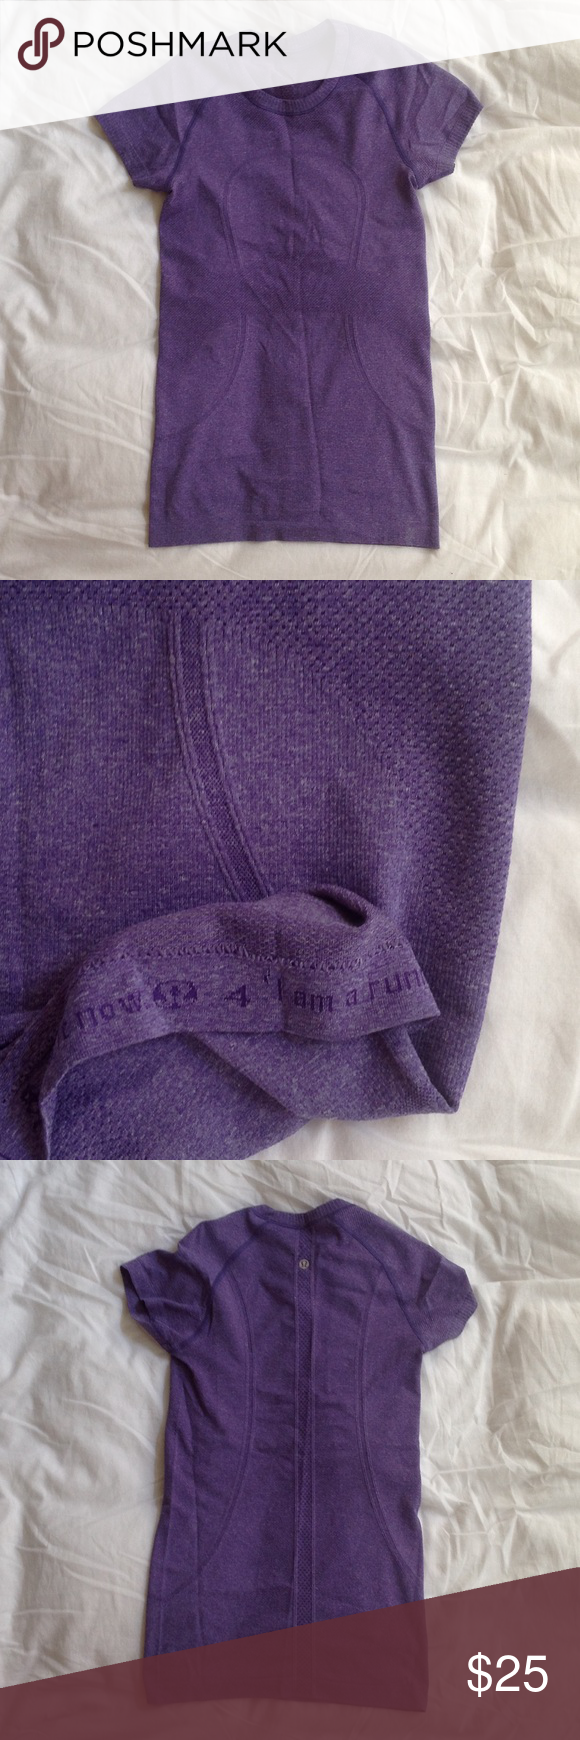 Lululemon size 4 purple swiftly SS No stains, rips or tears. In like new condition Tops Tees - Short Sleeve